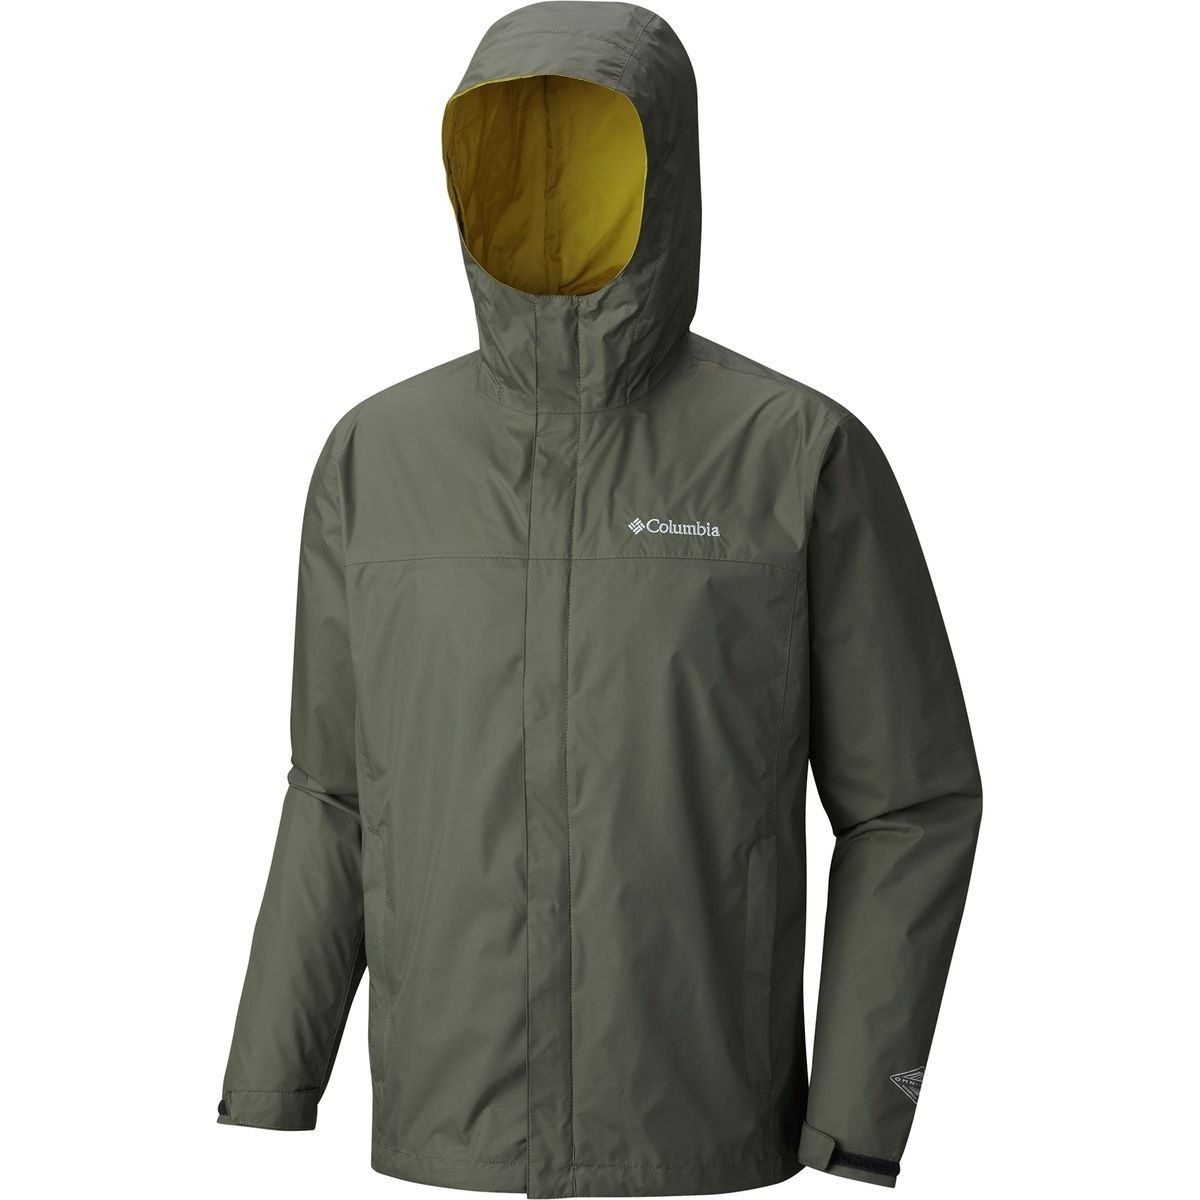 Columbia Men's Watertight Ii Jacket, Gravel, Large by Columbia (Image #3)